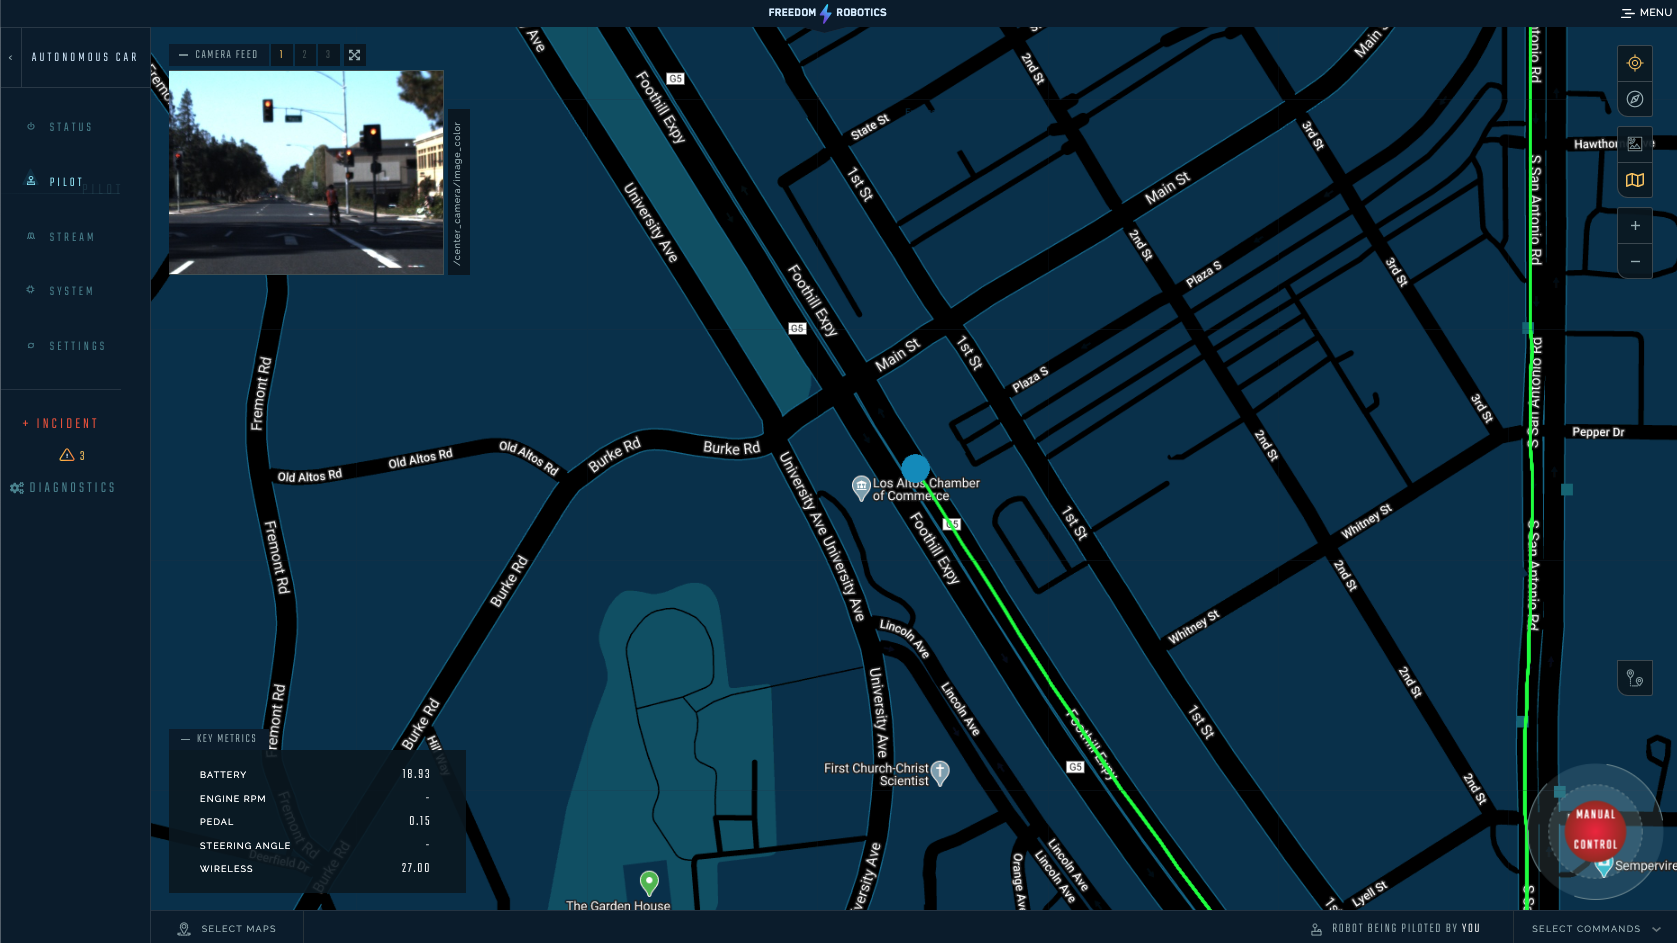 The GPS navigation view integrates maps, video feeds, memorized commands, and key metrics.